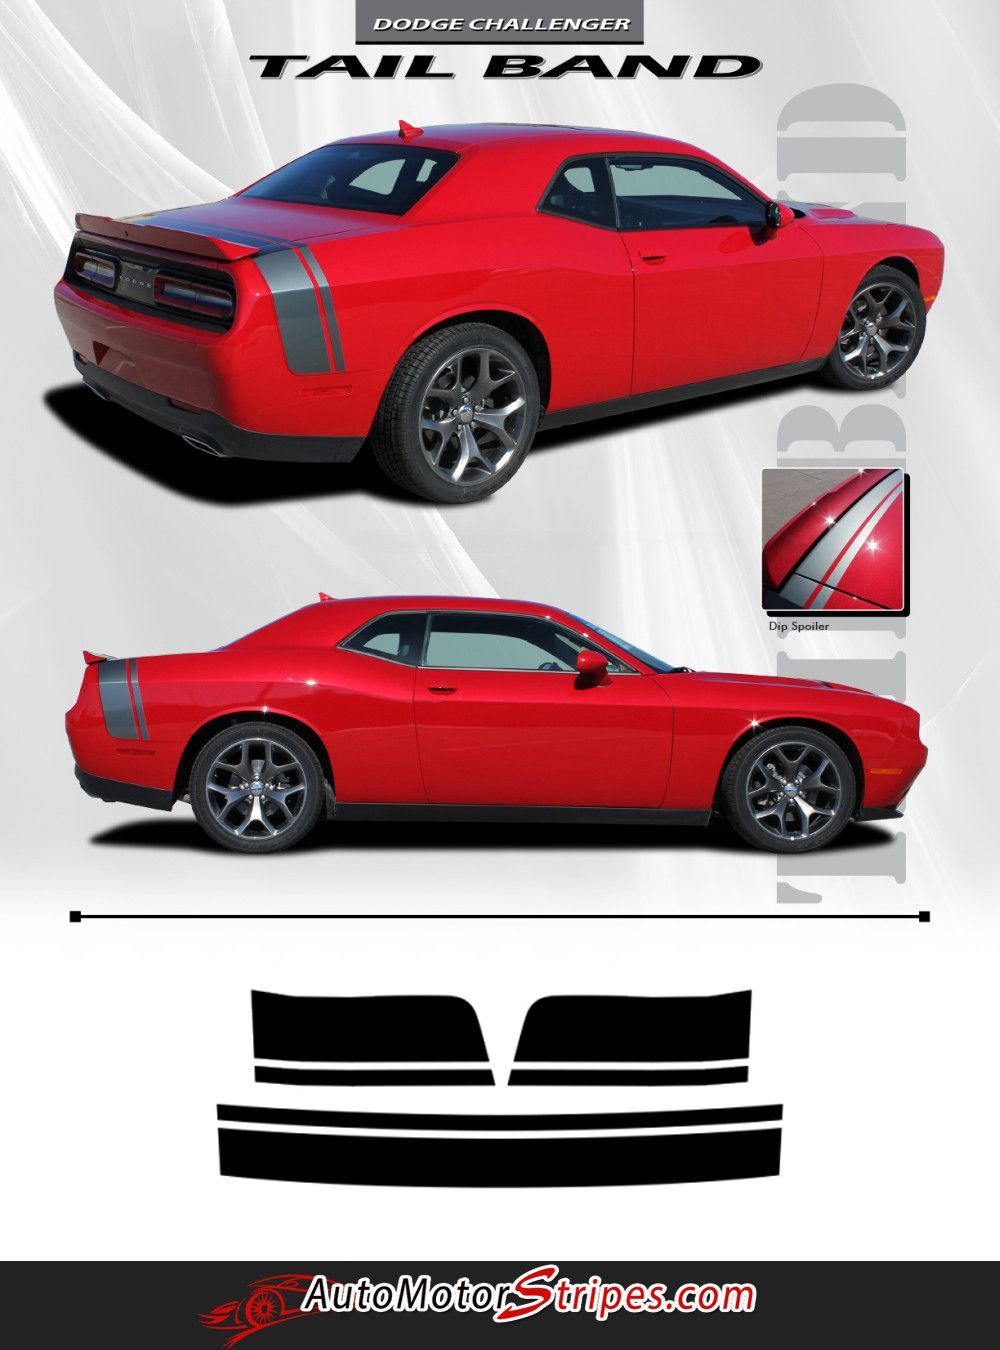 2011 2014 2015 2016 dodge challenger tailband factory mopar style bumblebee scat pack rear